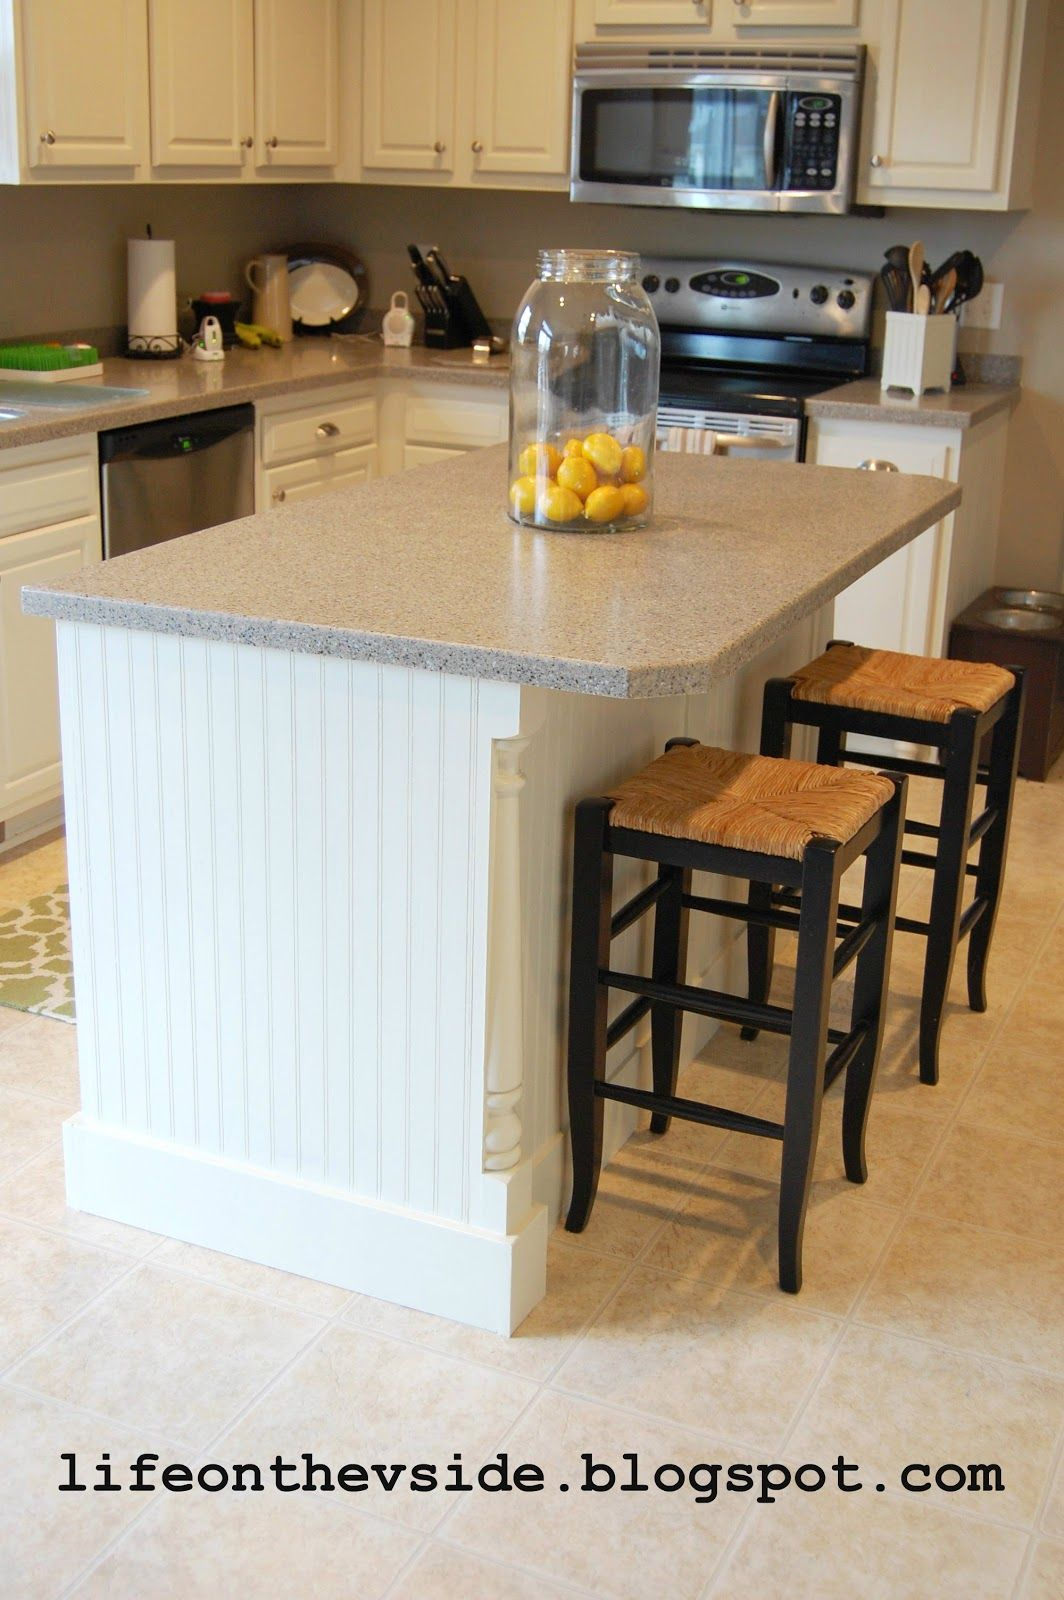 kitchen update ideas narrow island with seating diy tutorial lifeonthevside